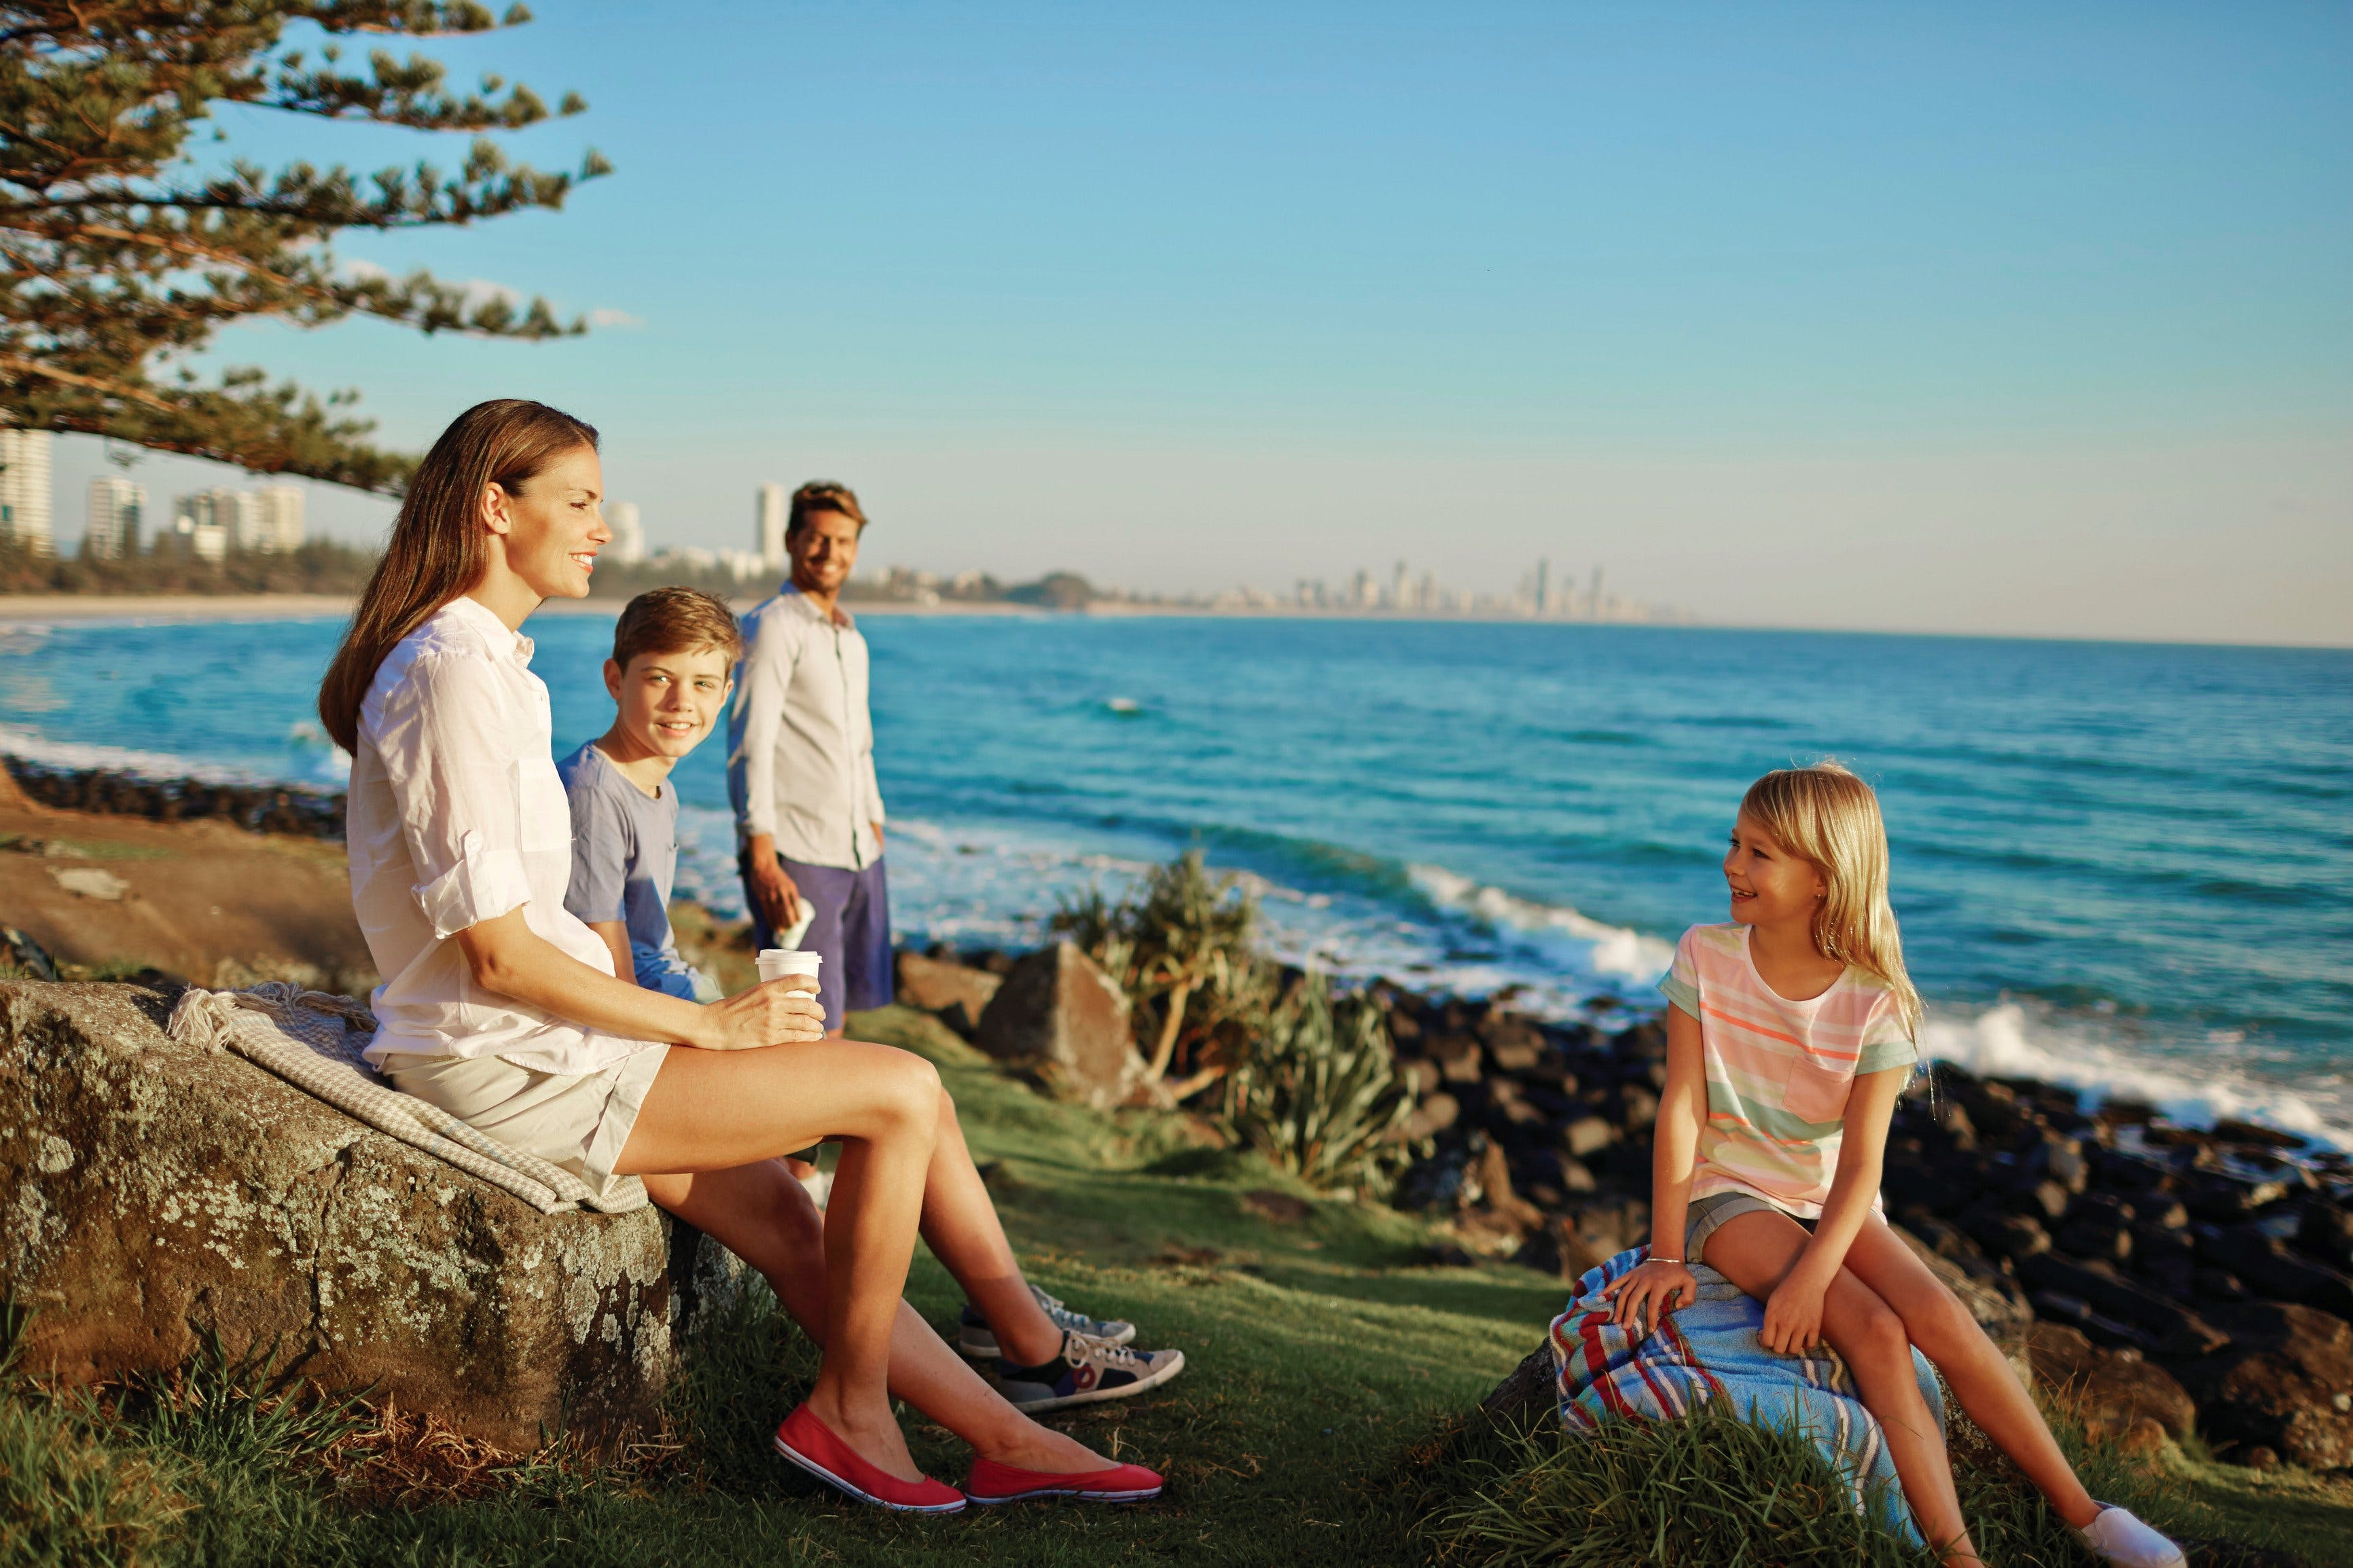 Oceanview Walk, Burleigh Head National Park Logo and Images